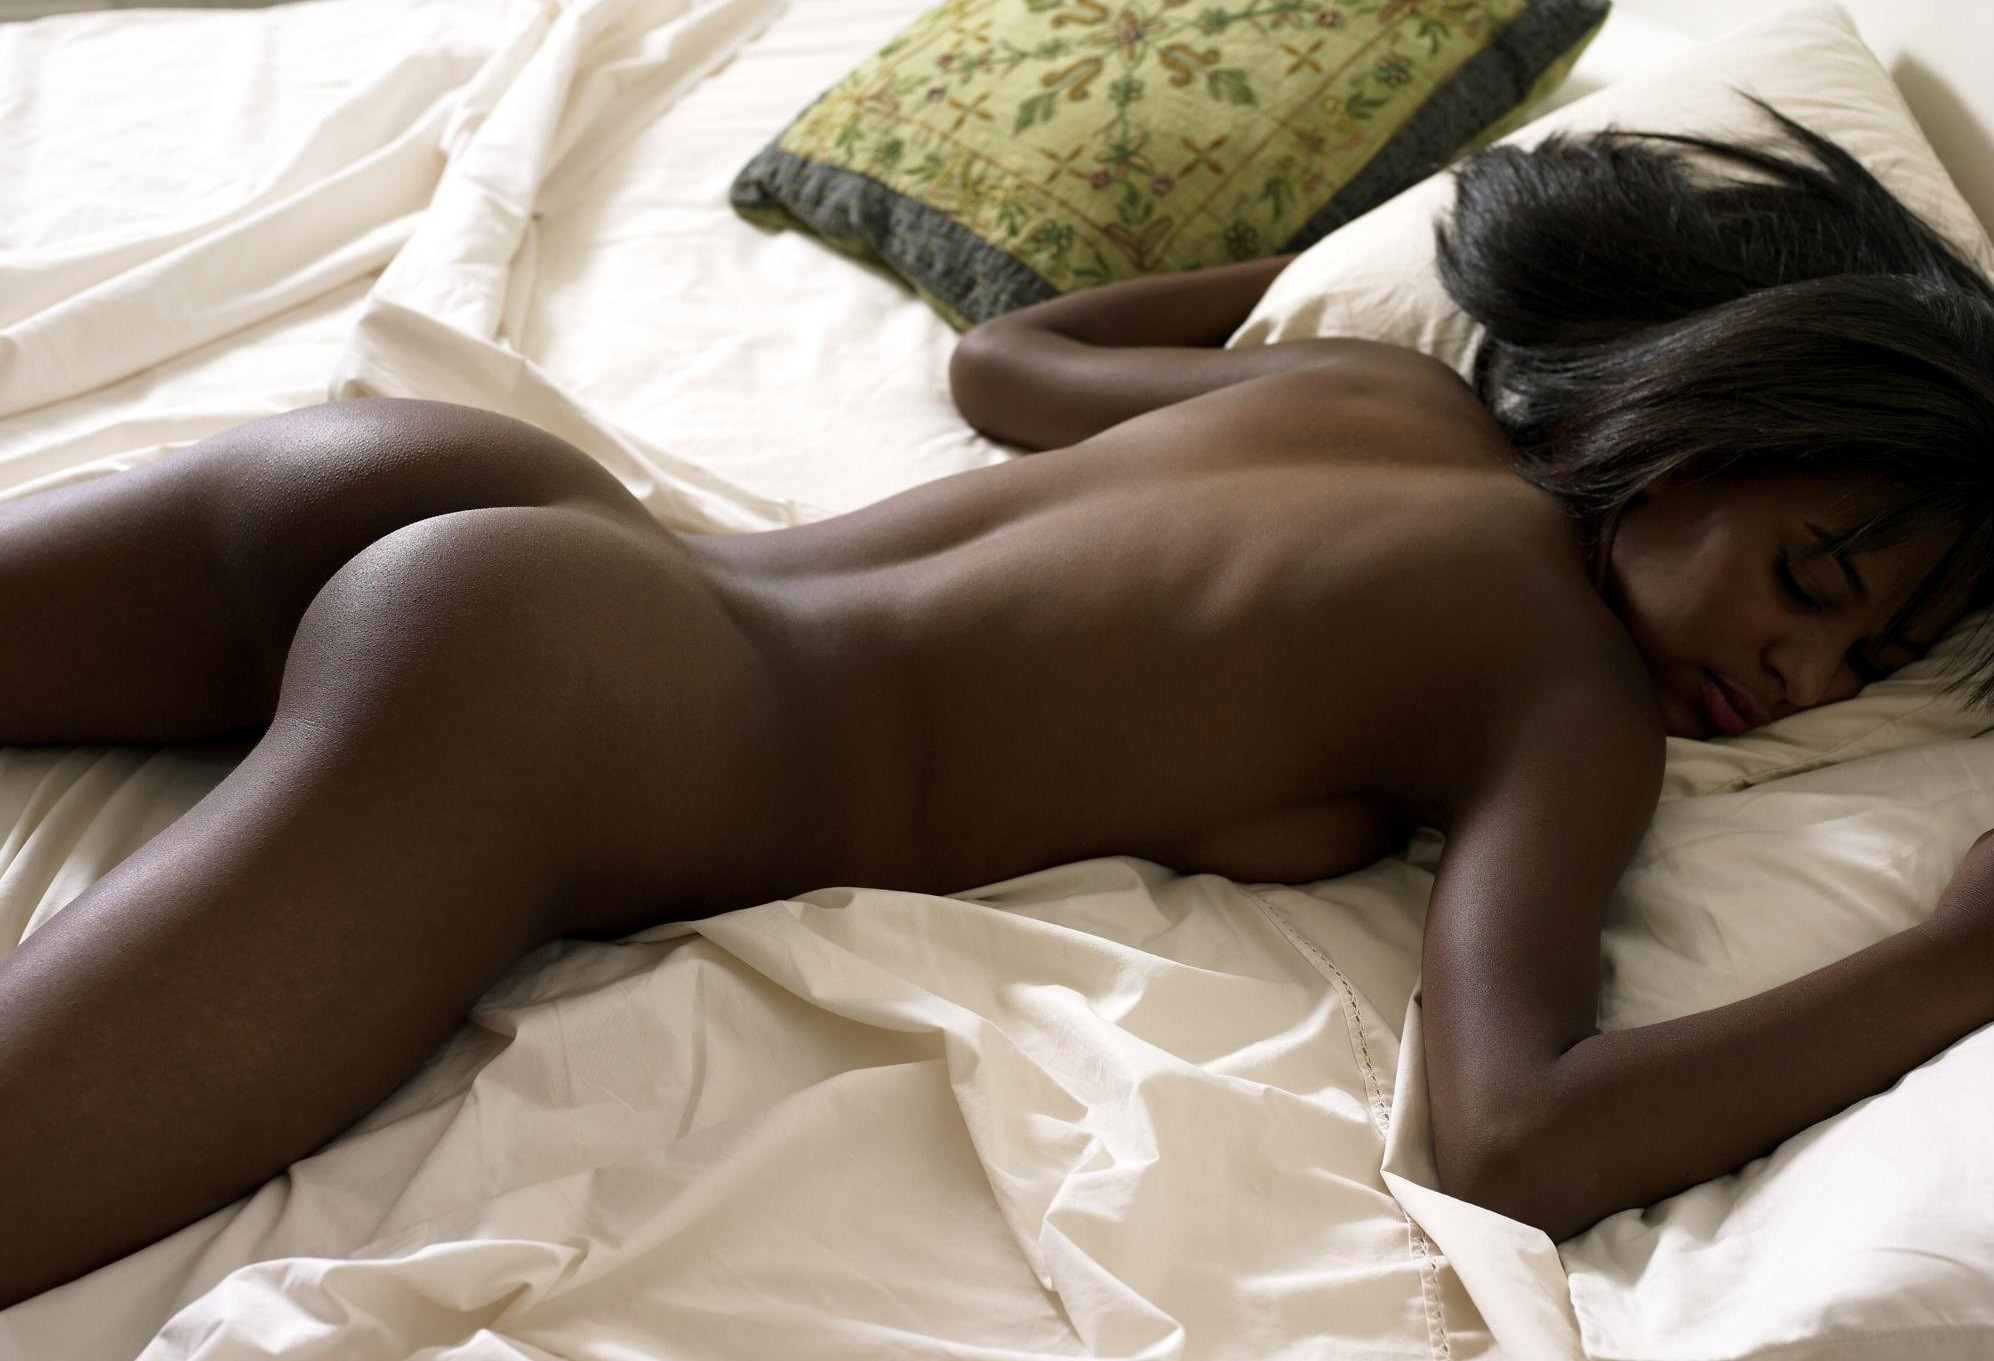 Sweet black girl nude